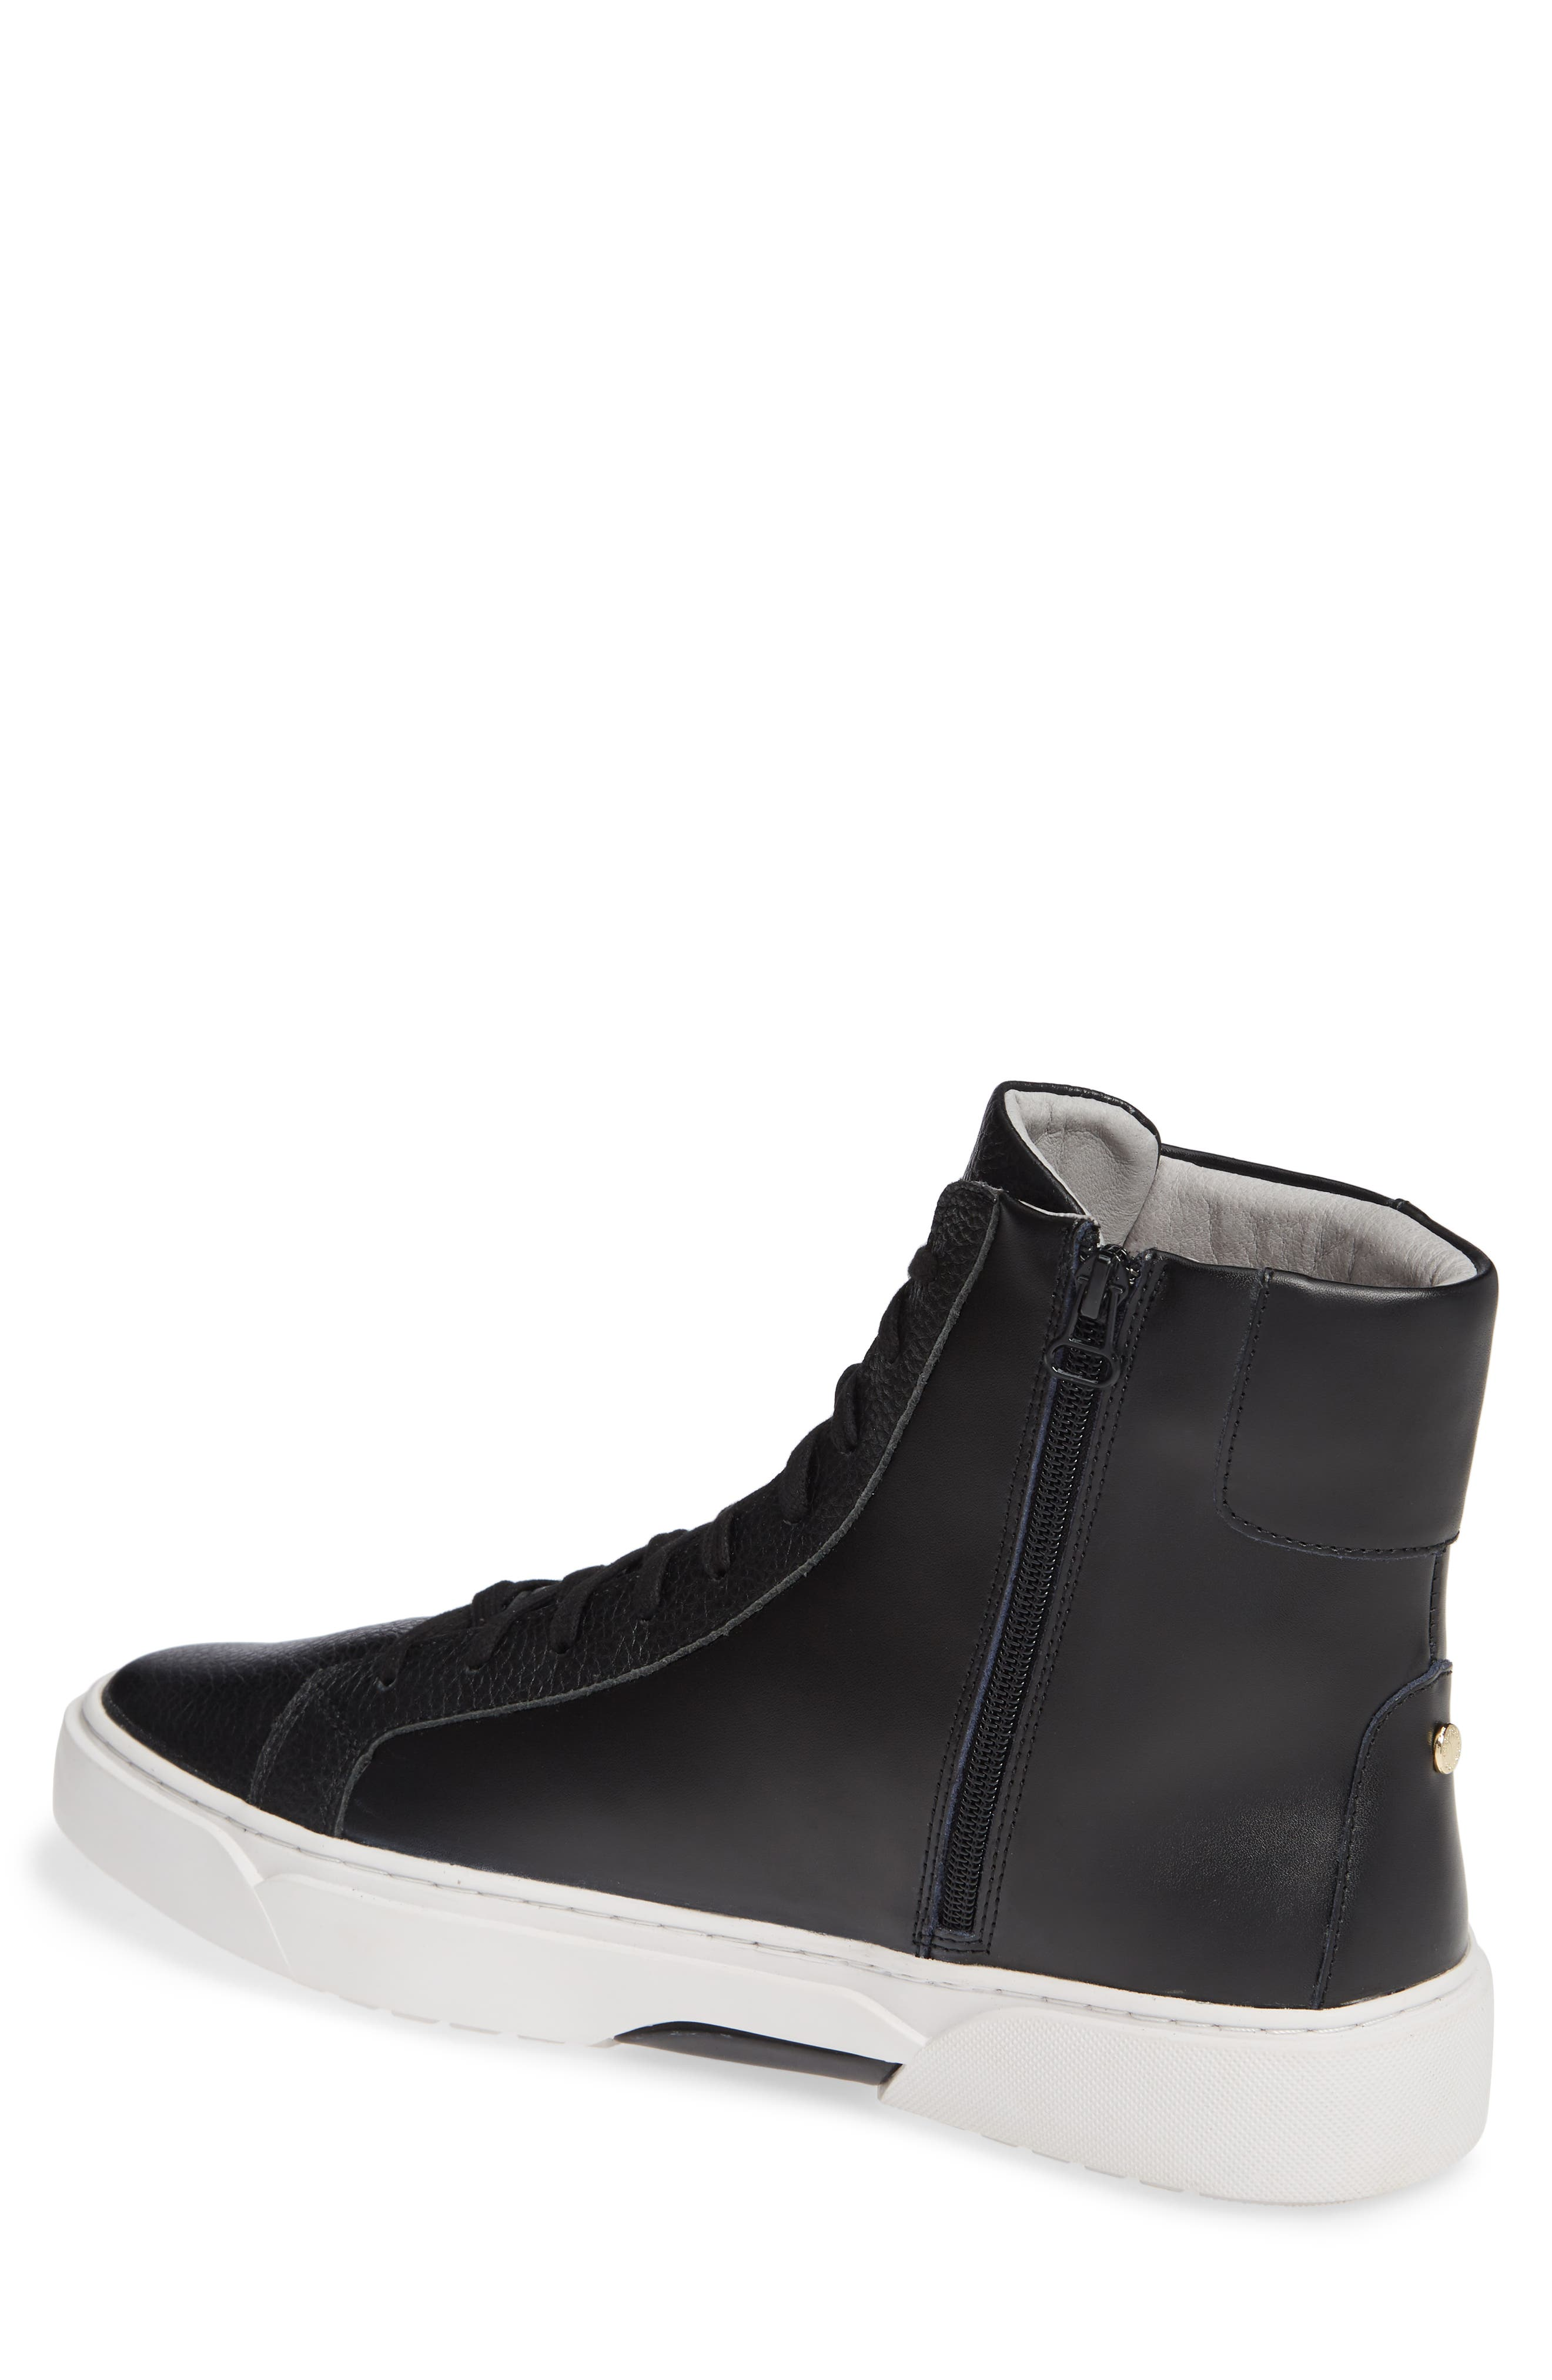 Logan High Top Sneaker,                             Alternate thumbnail 2, color,                             HIGHLAND LEATHER